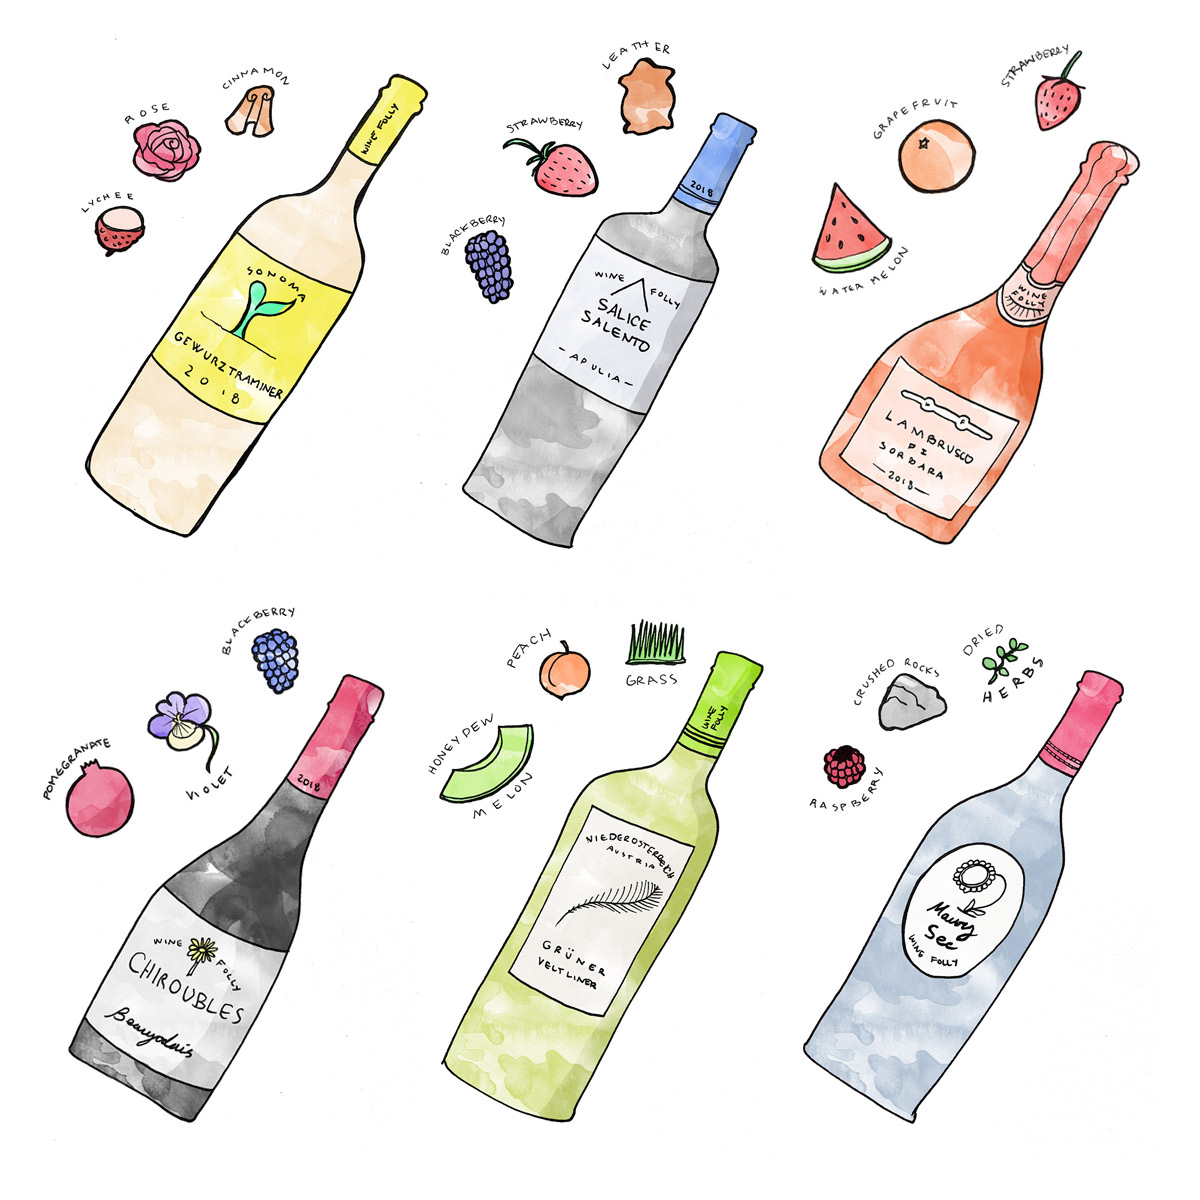 6 Wine Bottles Illustrated with Tasting Notes by Wine Folly